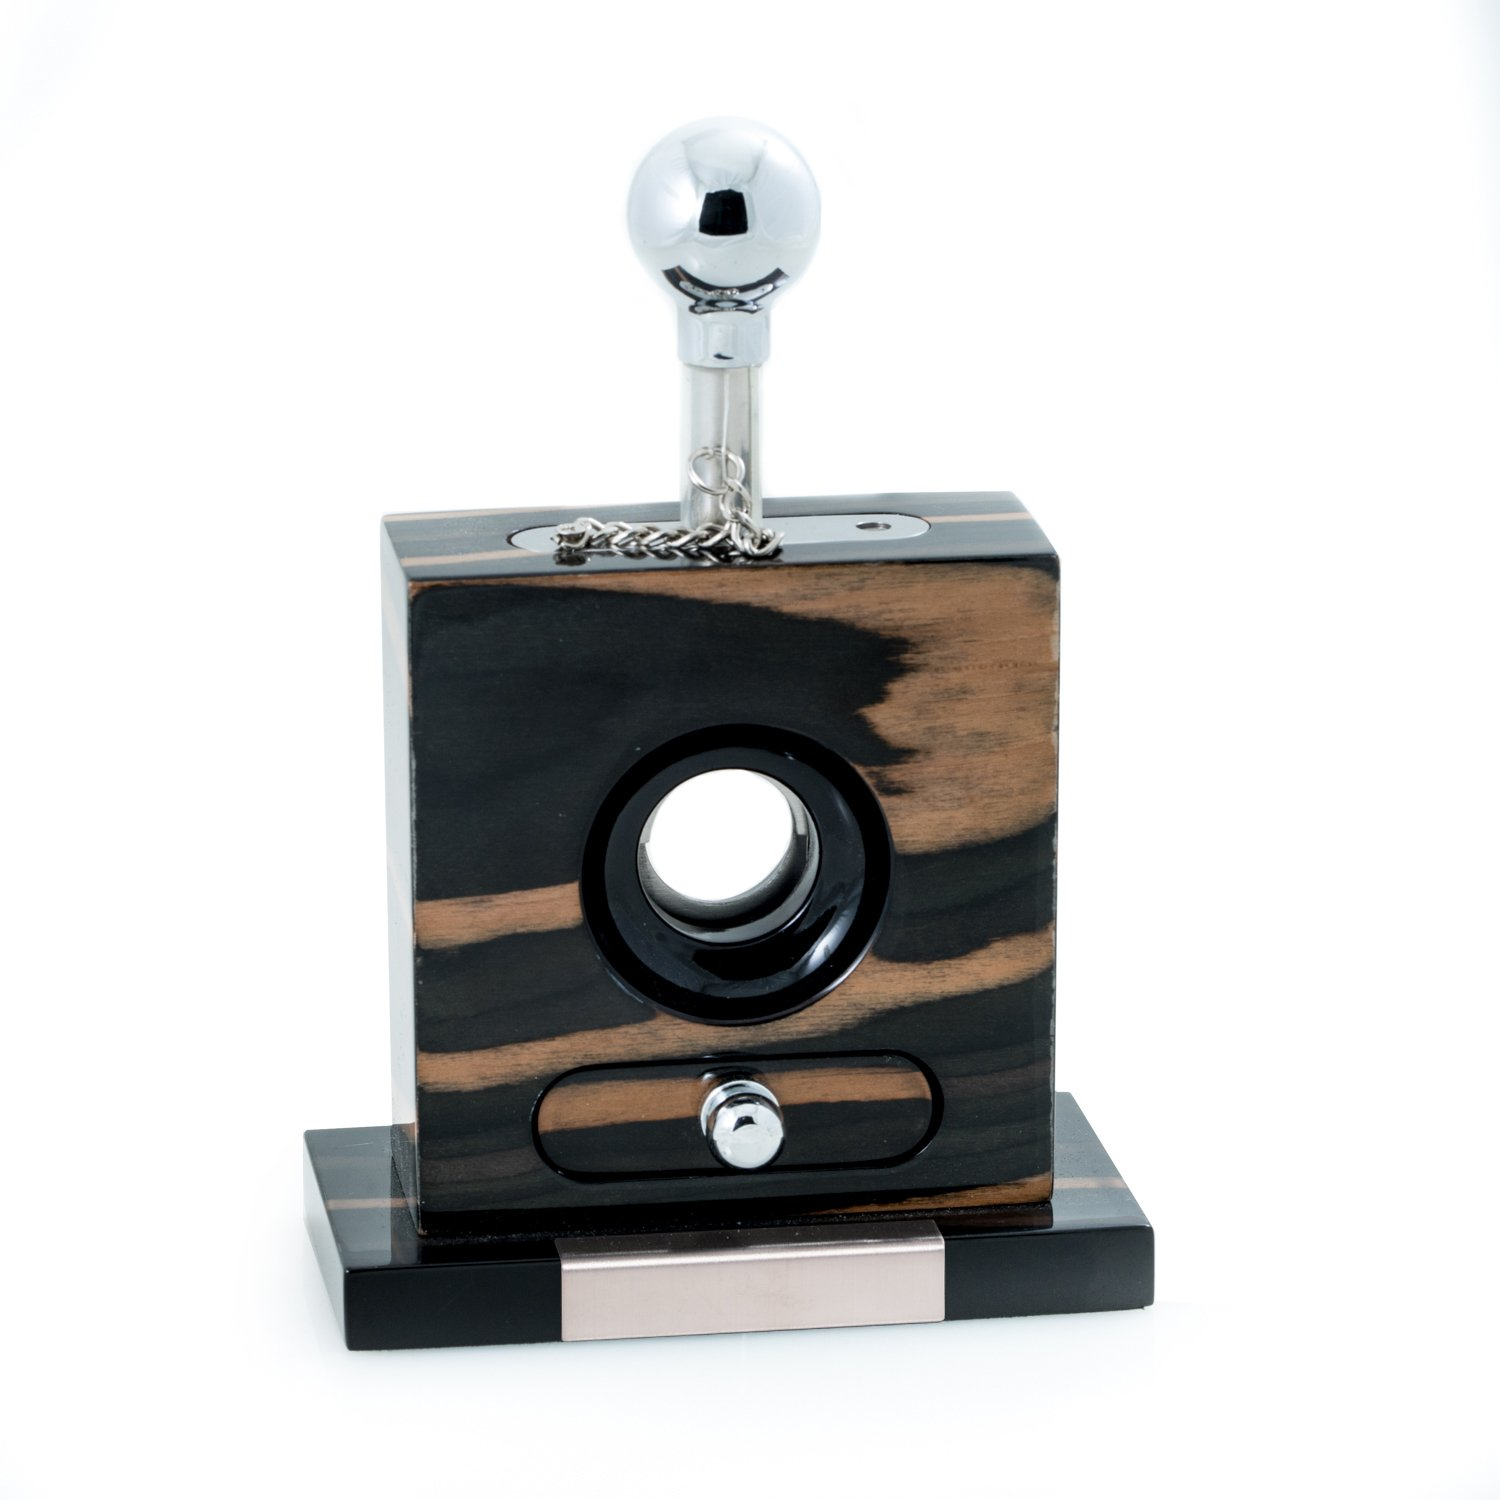 Bey-Berk AJ-C114 Lacquered Wood and Stainless Steel Table Top Guillotine Cigar Cutter with Drawer for Cuttings, Ebony